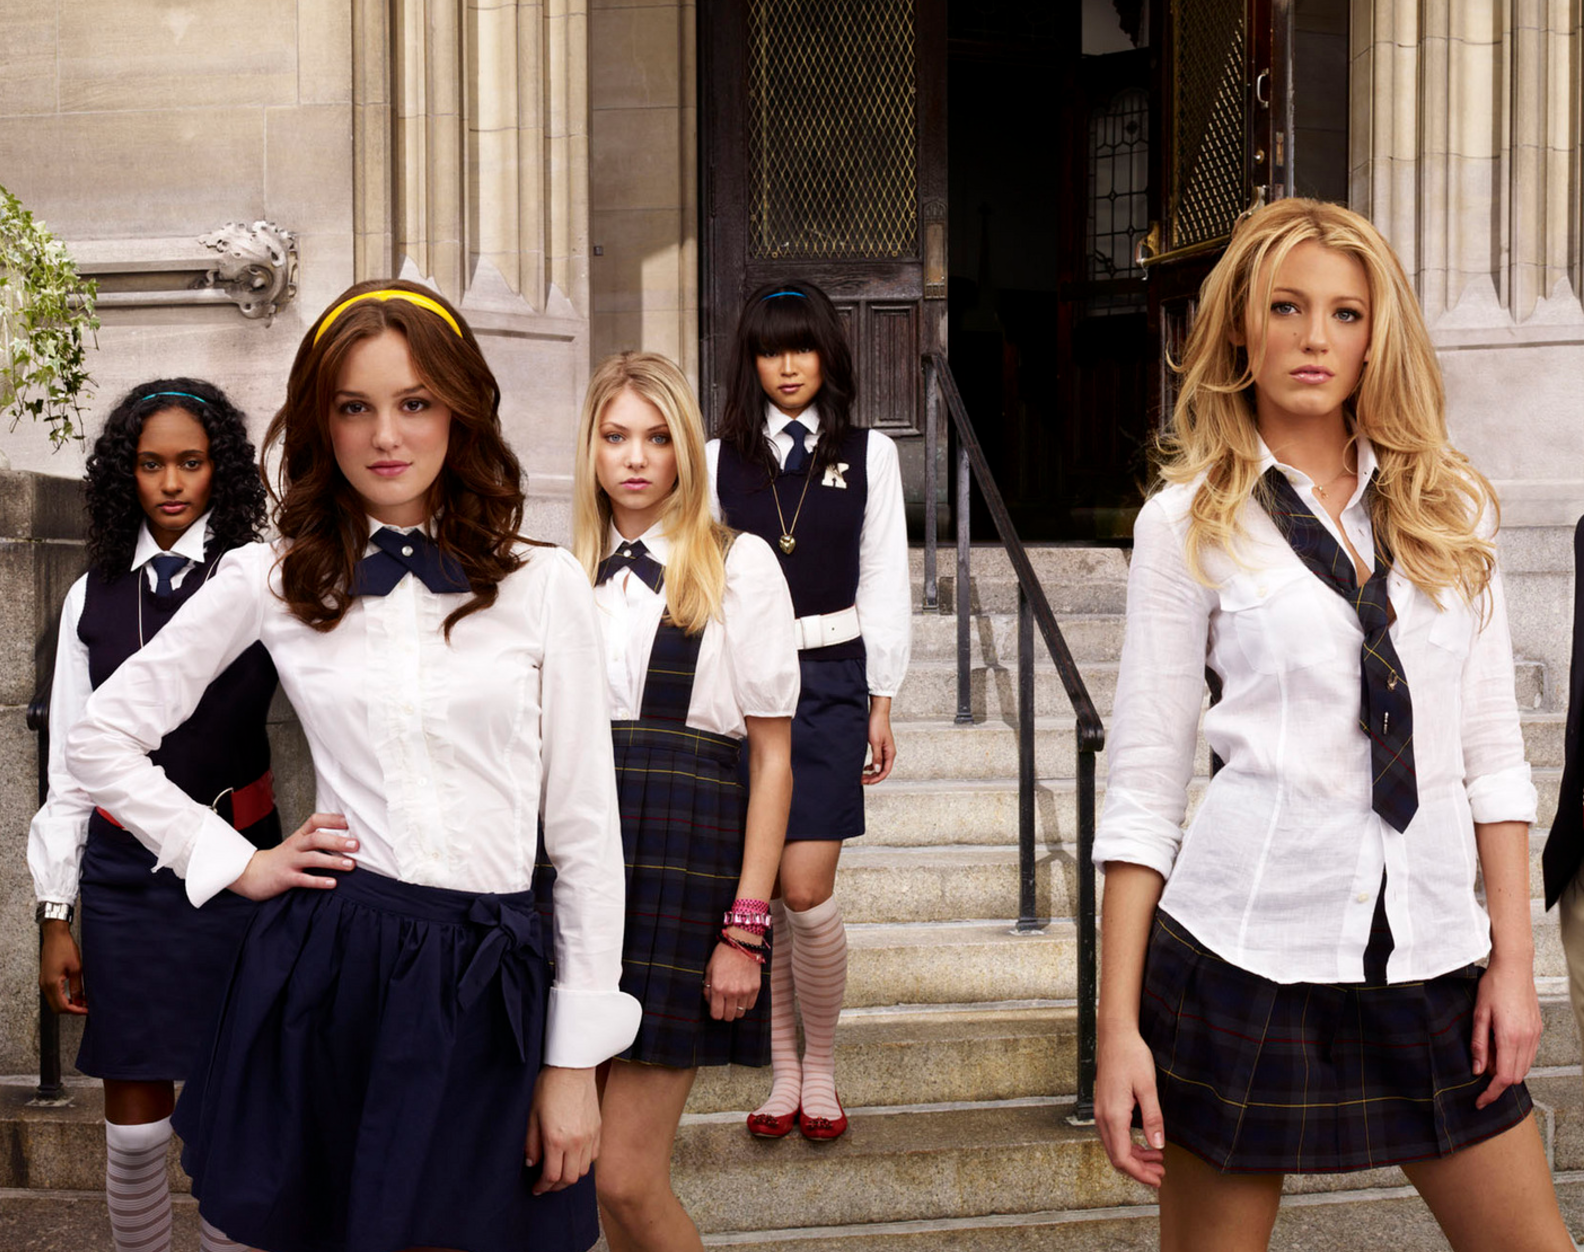 5 iconic girl squad looks for that last minute halloween costume